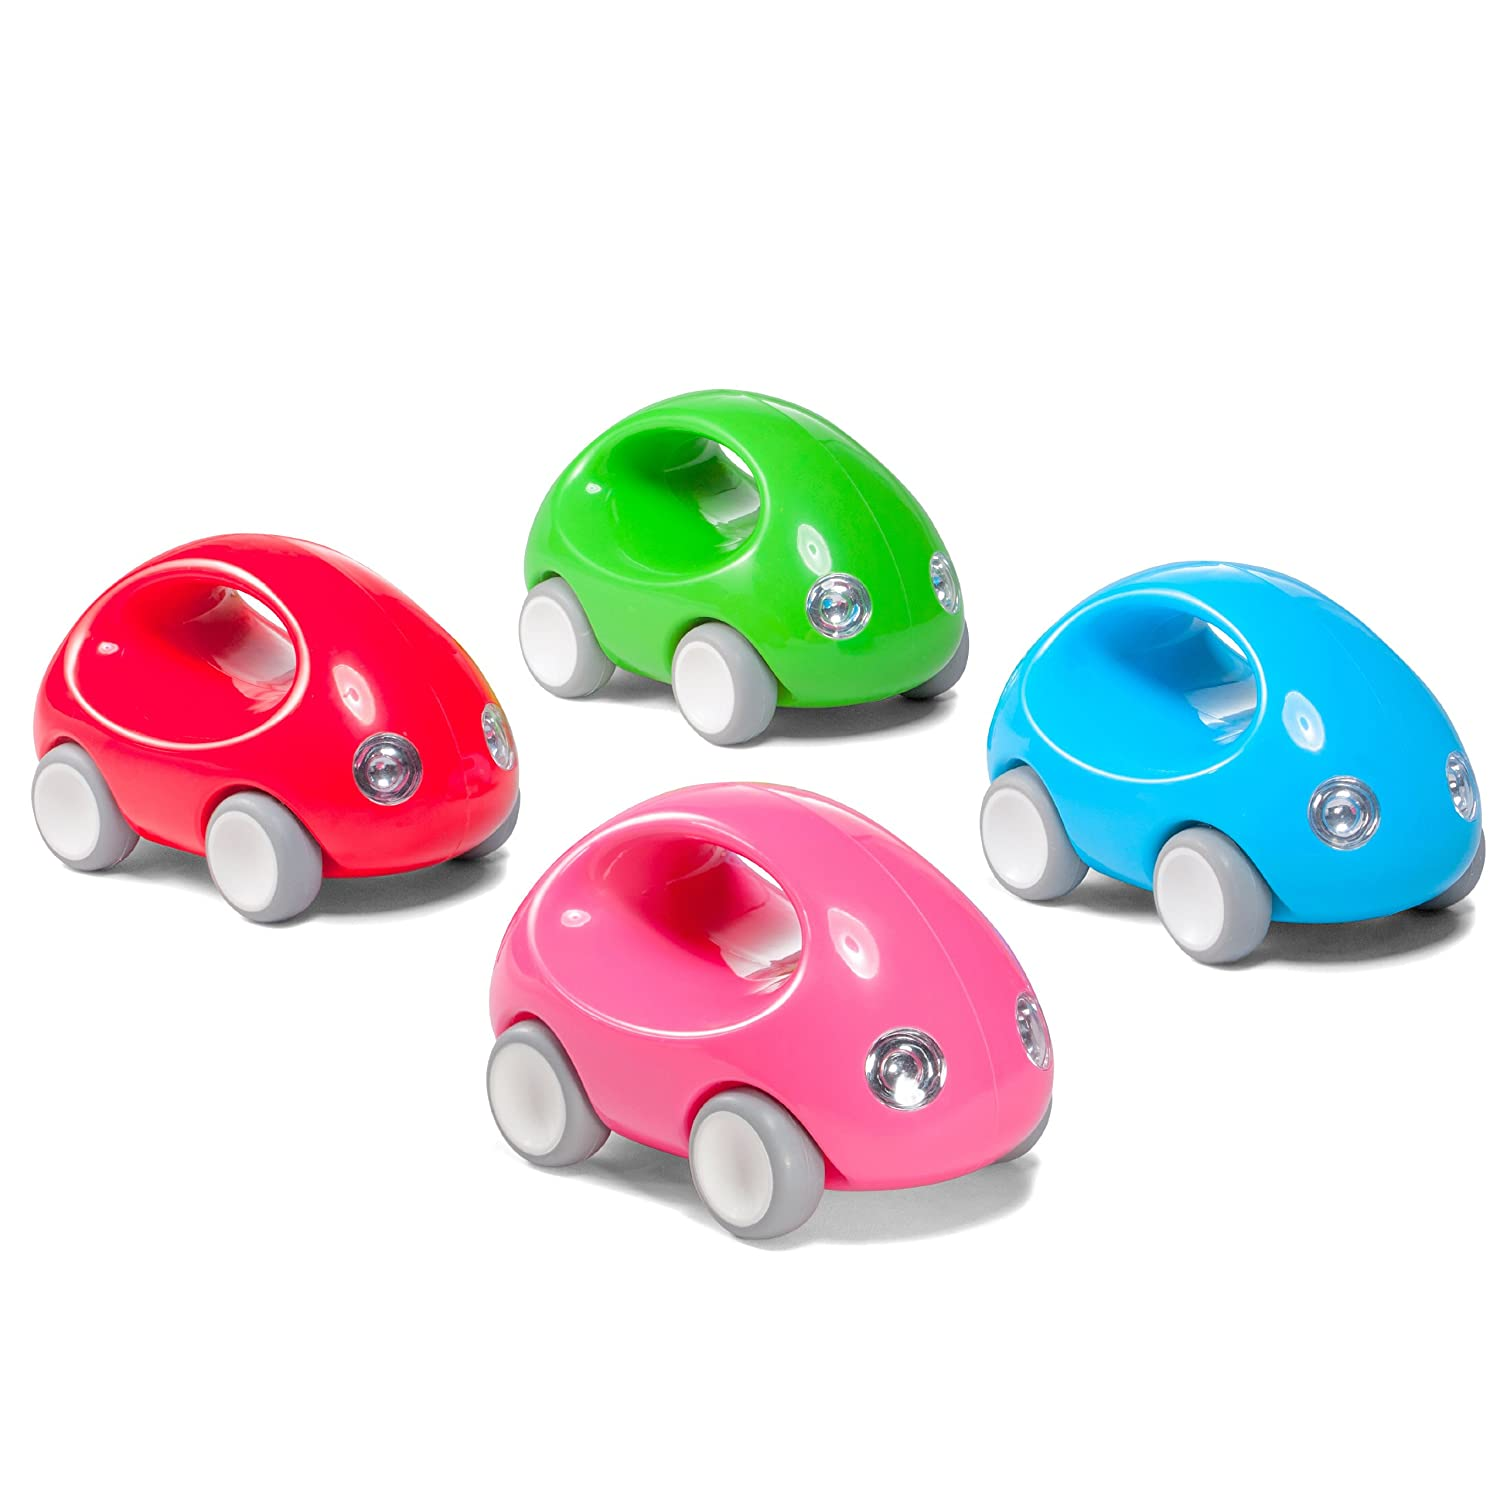 Toy Cars For 1 Year Old Boy : Best gifts and toys for year old boys